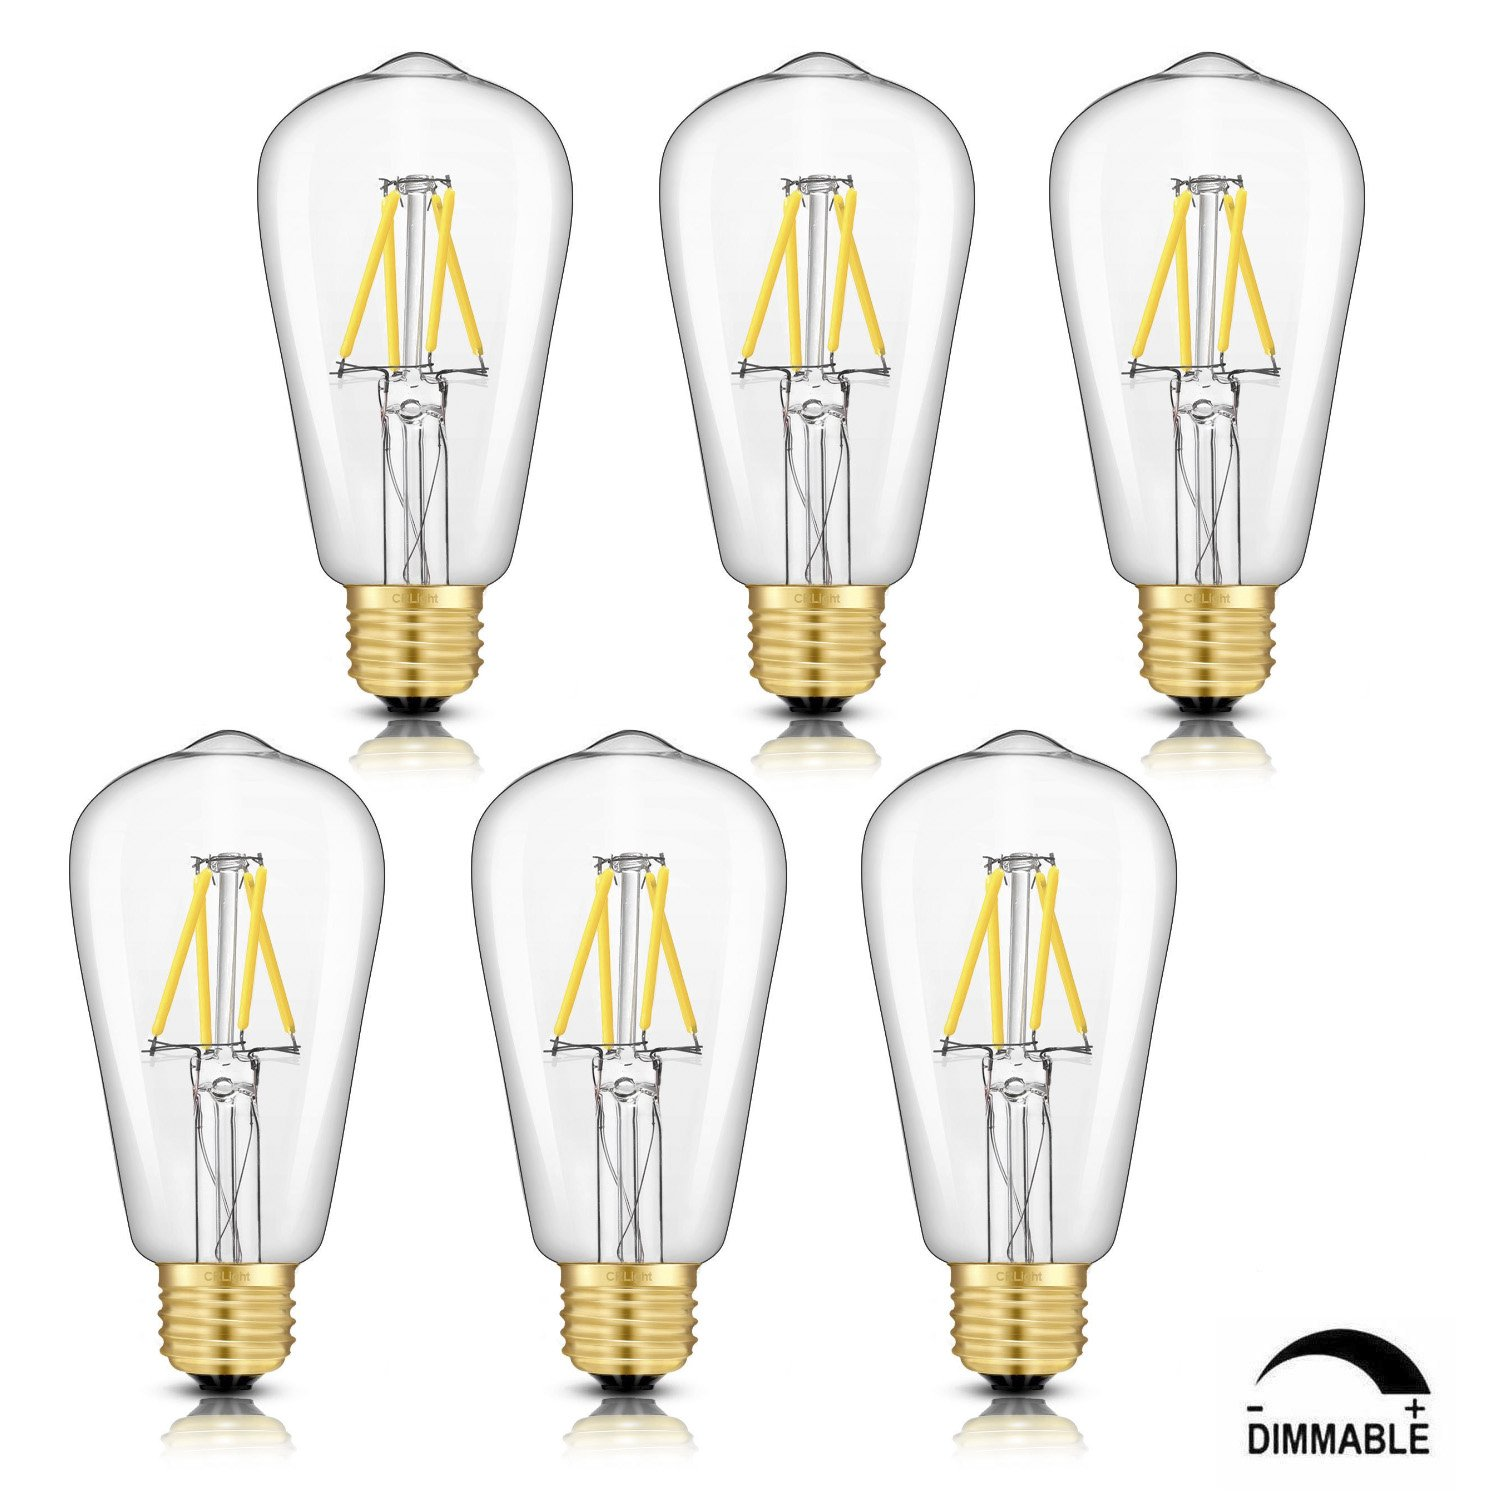 Crlight Led Edison Bulb 4w Dimmable 4000k Daylight Neutral White Or Lamp Pulser Circuit 500lm 50w Equivalent E26 Medium Base St58 Vintage Filament Bulbs 360 Degrees Beam